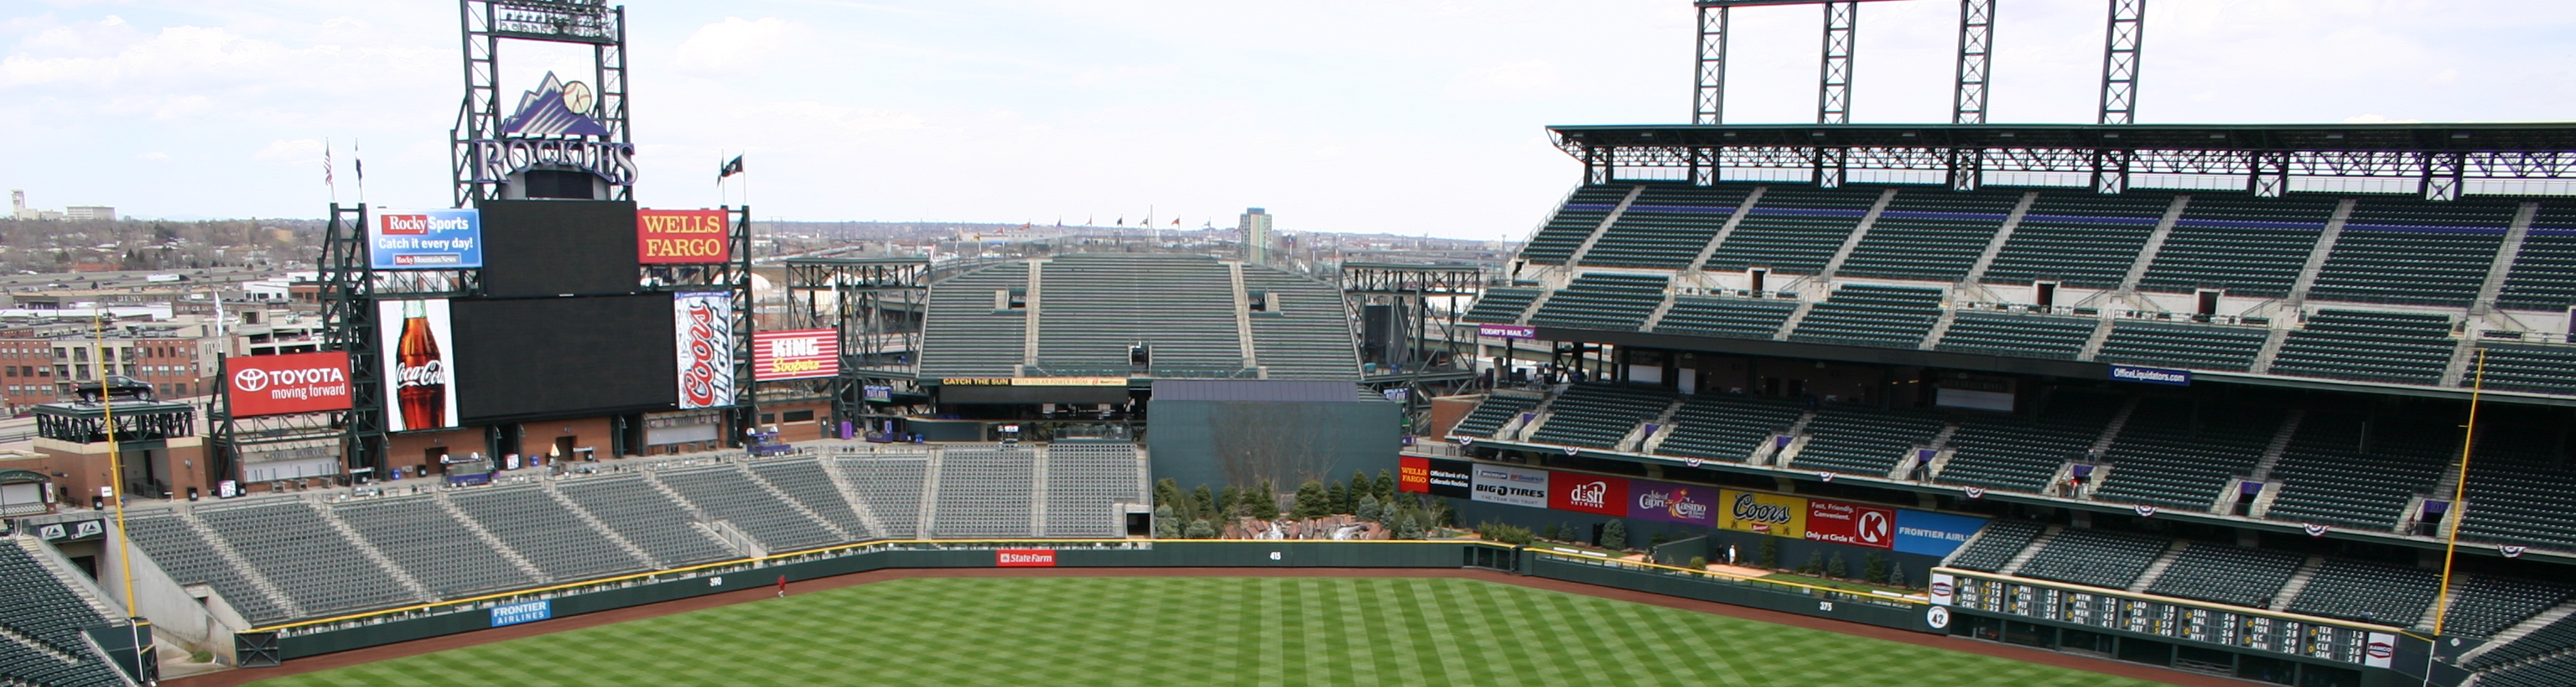 Denver baseball tours,rockies,coors field,baseball stadium tours,baseball vacation packages